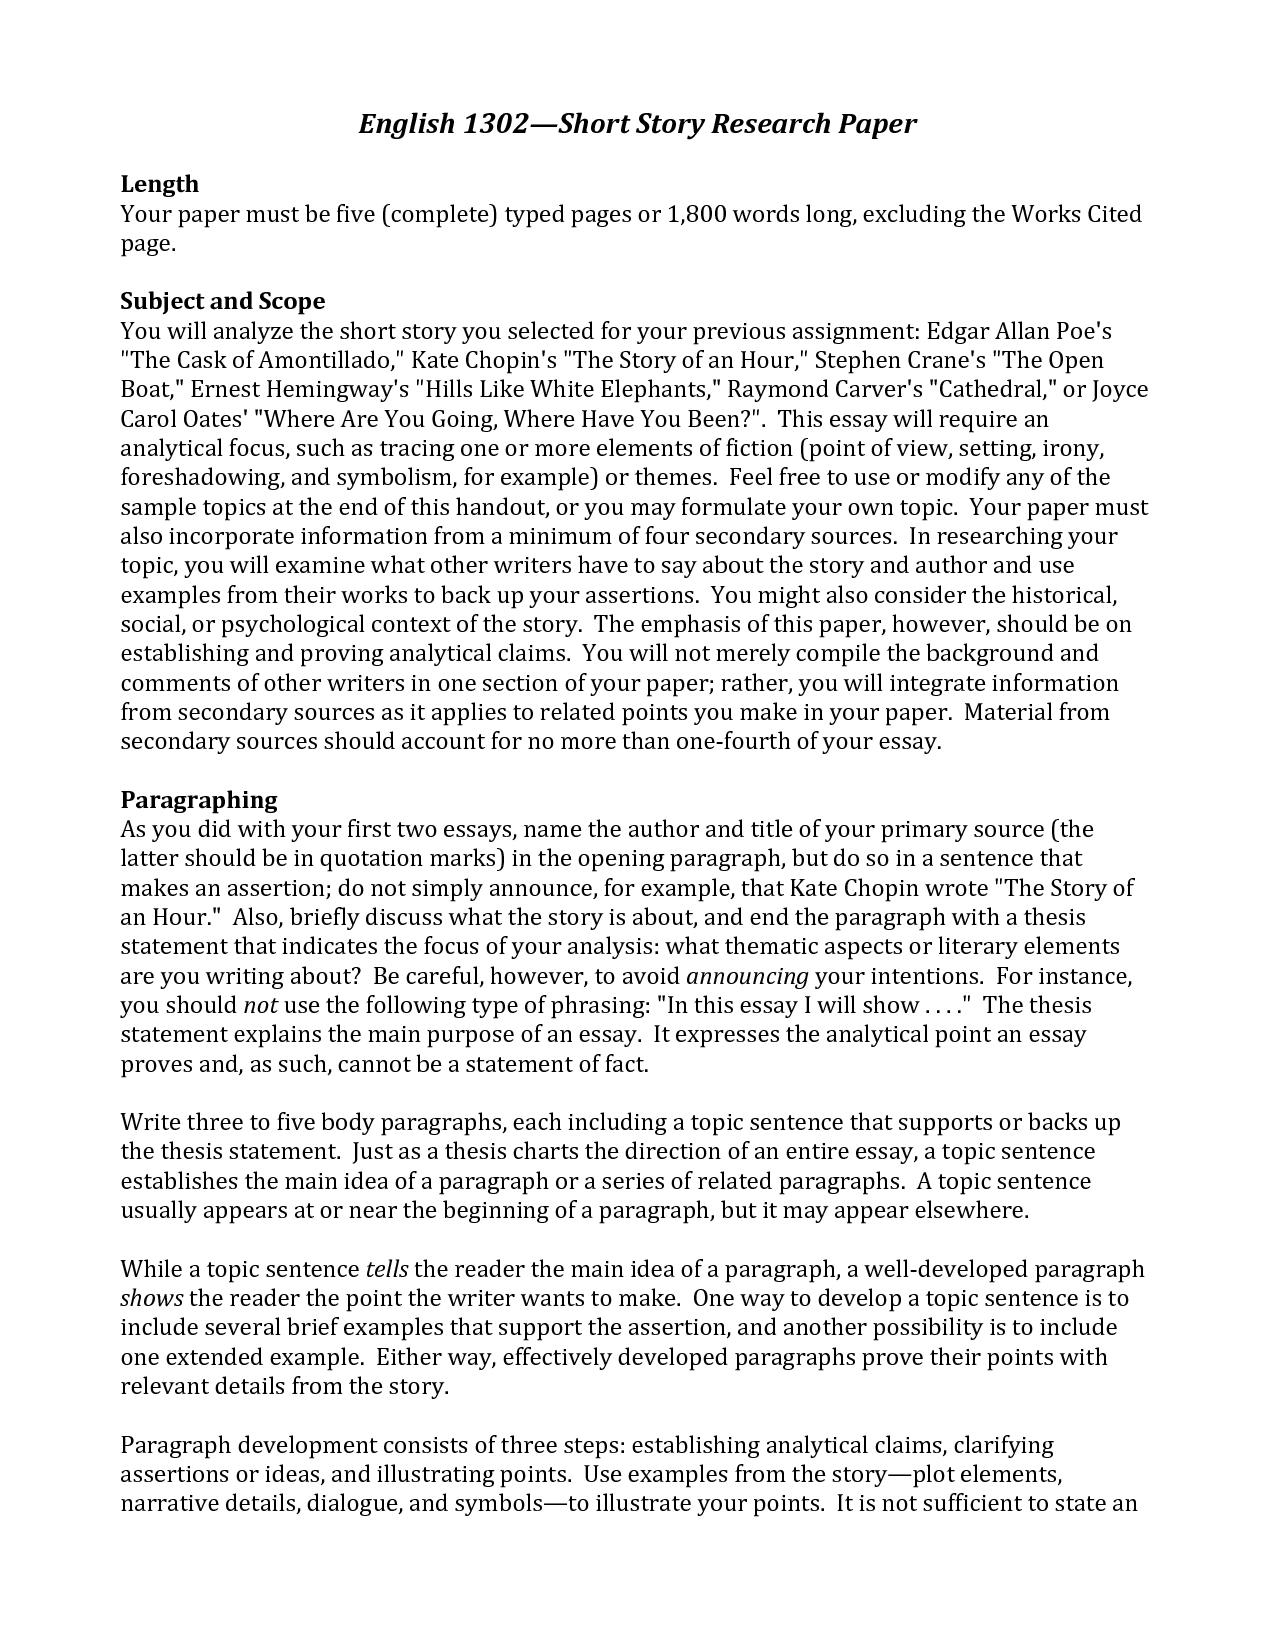 002 Ideas For Research Fascinating Paper Papers In Economics High School College